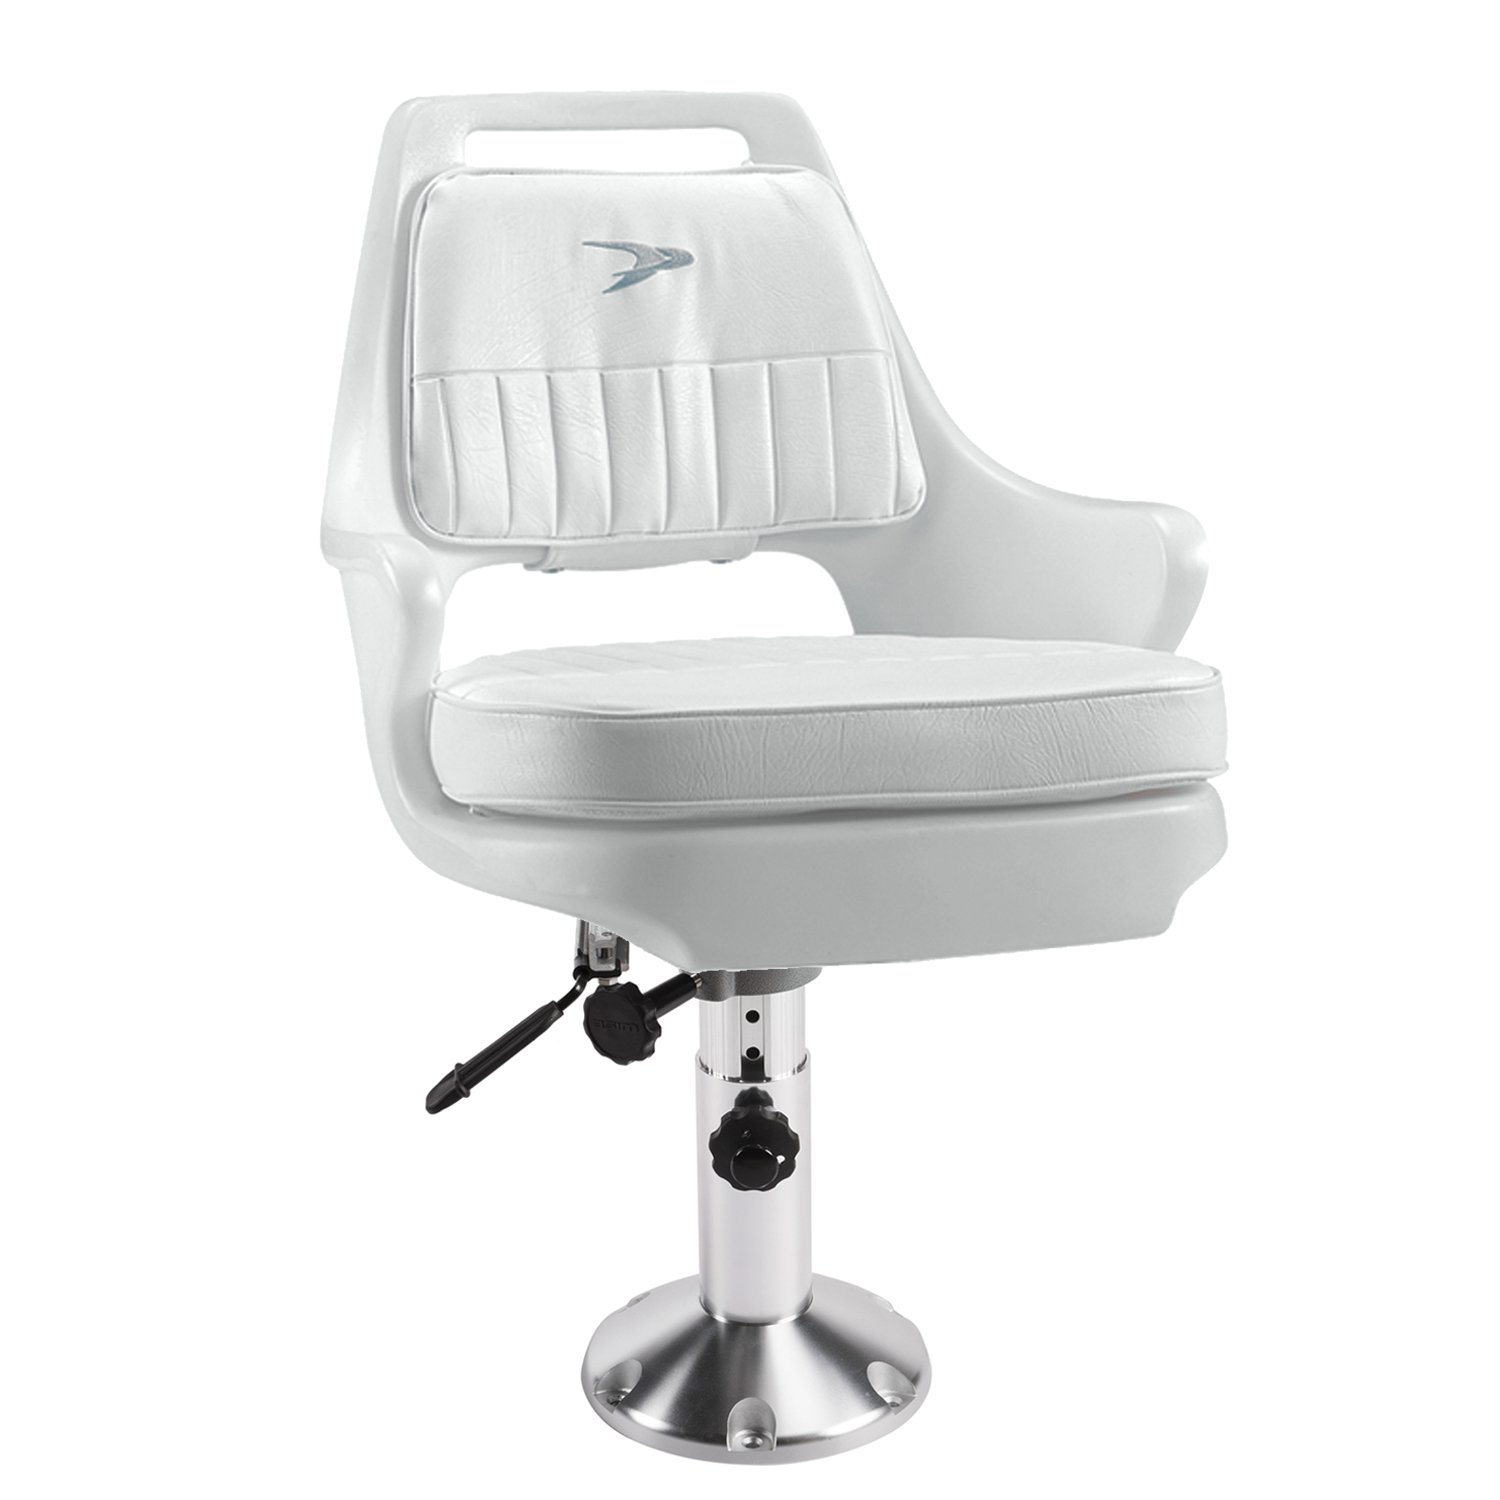 Wise 8WD015-6-710 Standard Pilot Chair with Adjustable Height Pedestal and Seat Slide by Wise